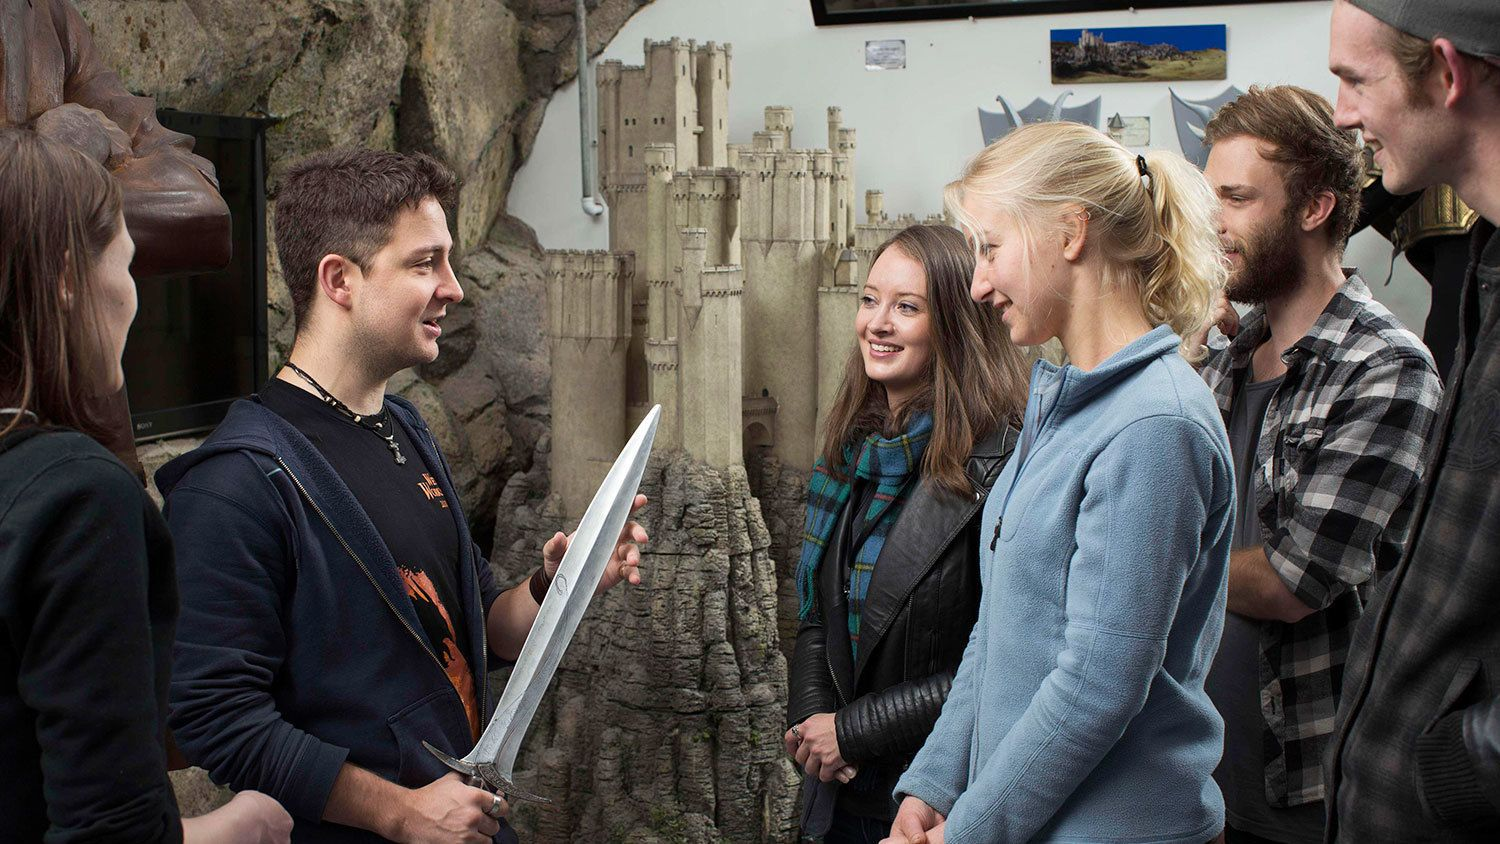 Tour guide holding Frodo's sword from the Lord of the Rings